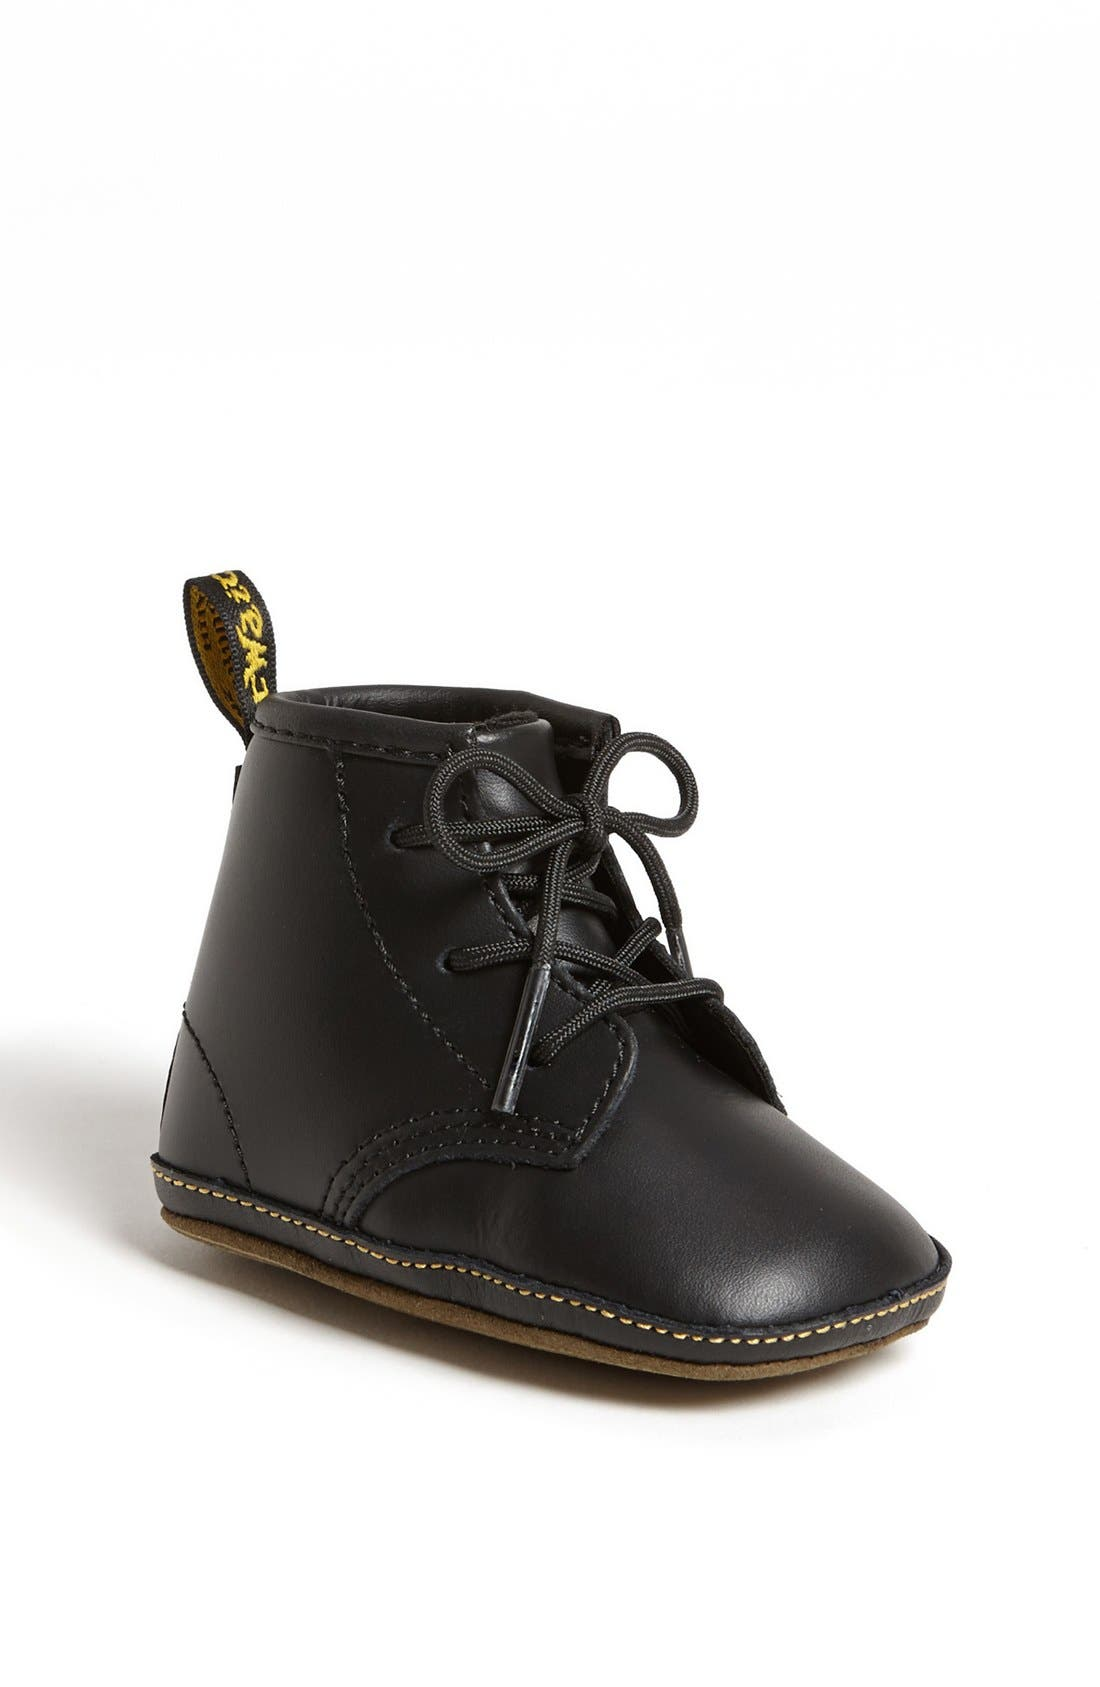 Alternate Image 1 Selected - Dr. Martens Crib Bootie (Baby)